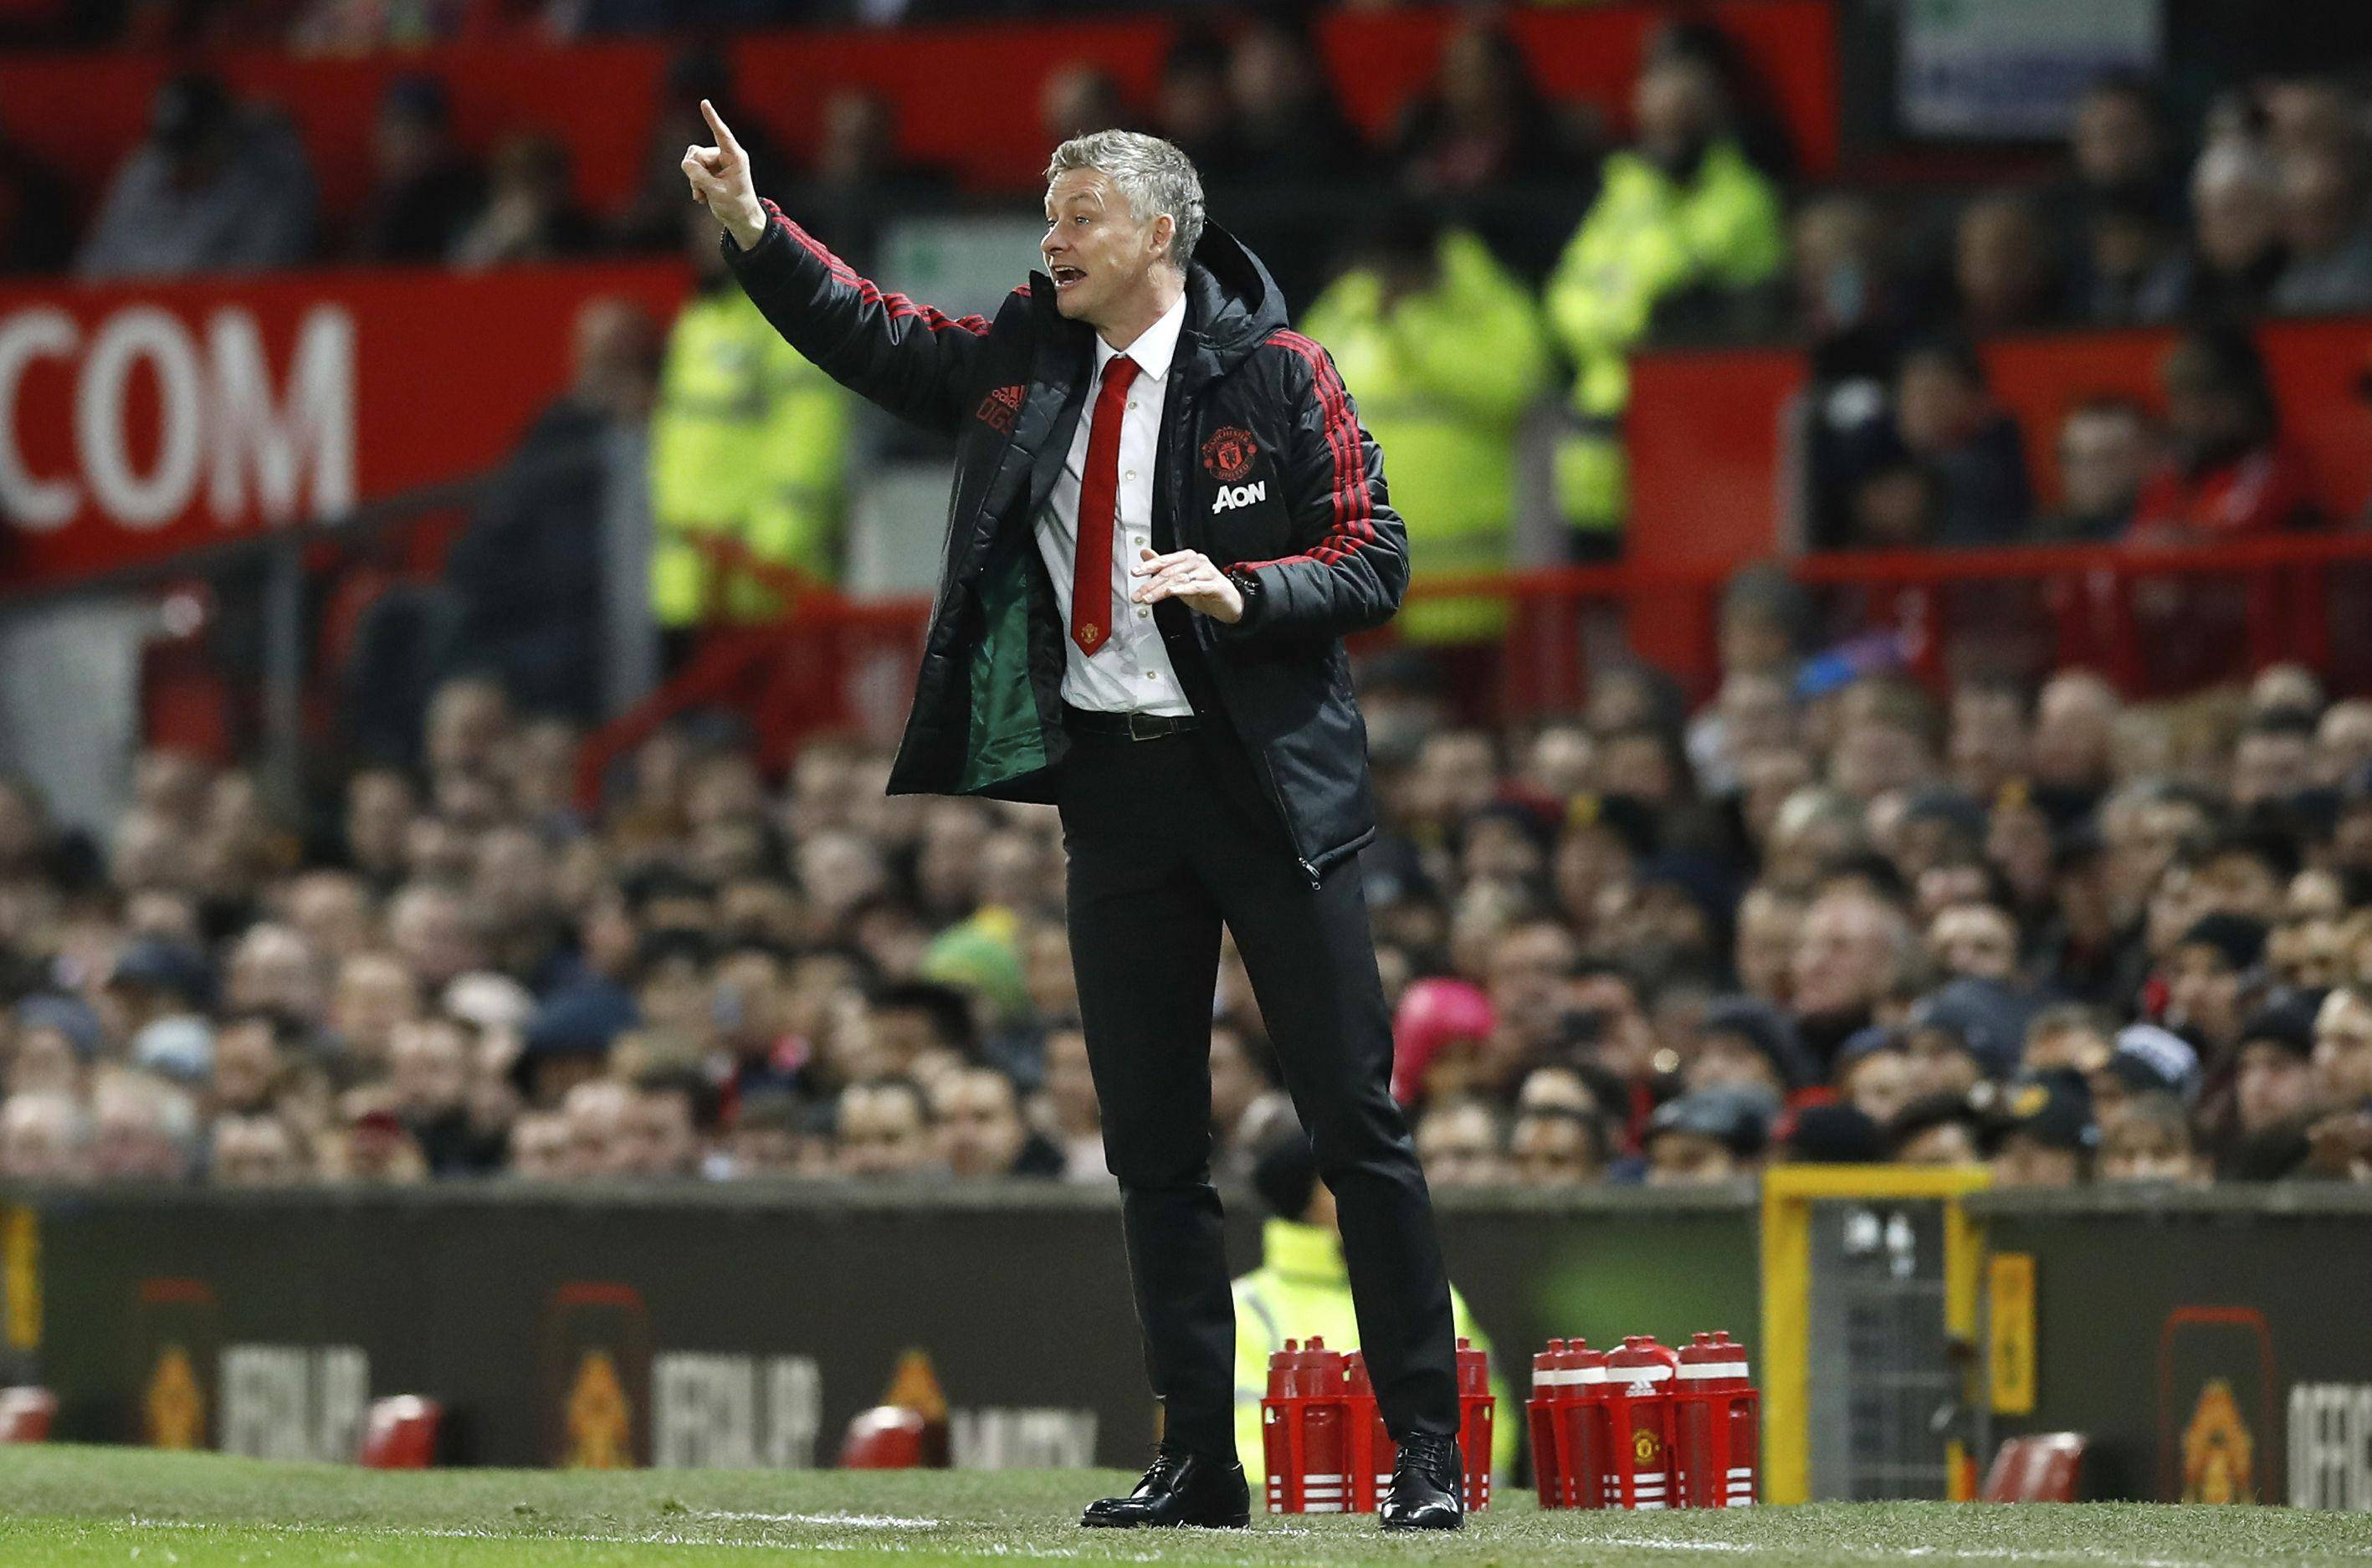 Man Utd win at Liverpool would be 'upset', says Solskjaer